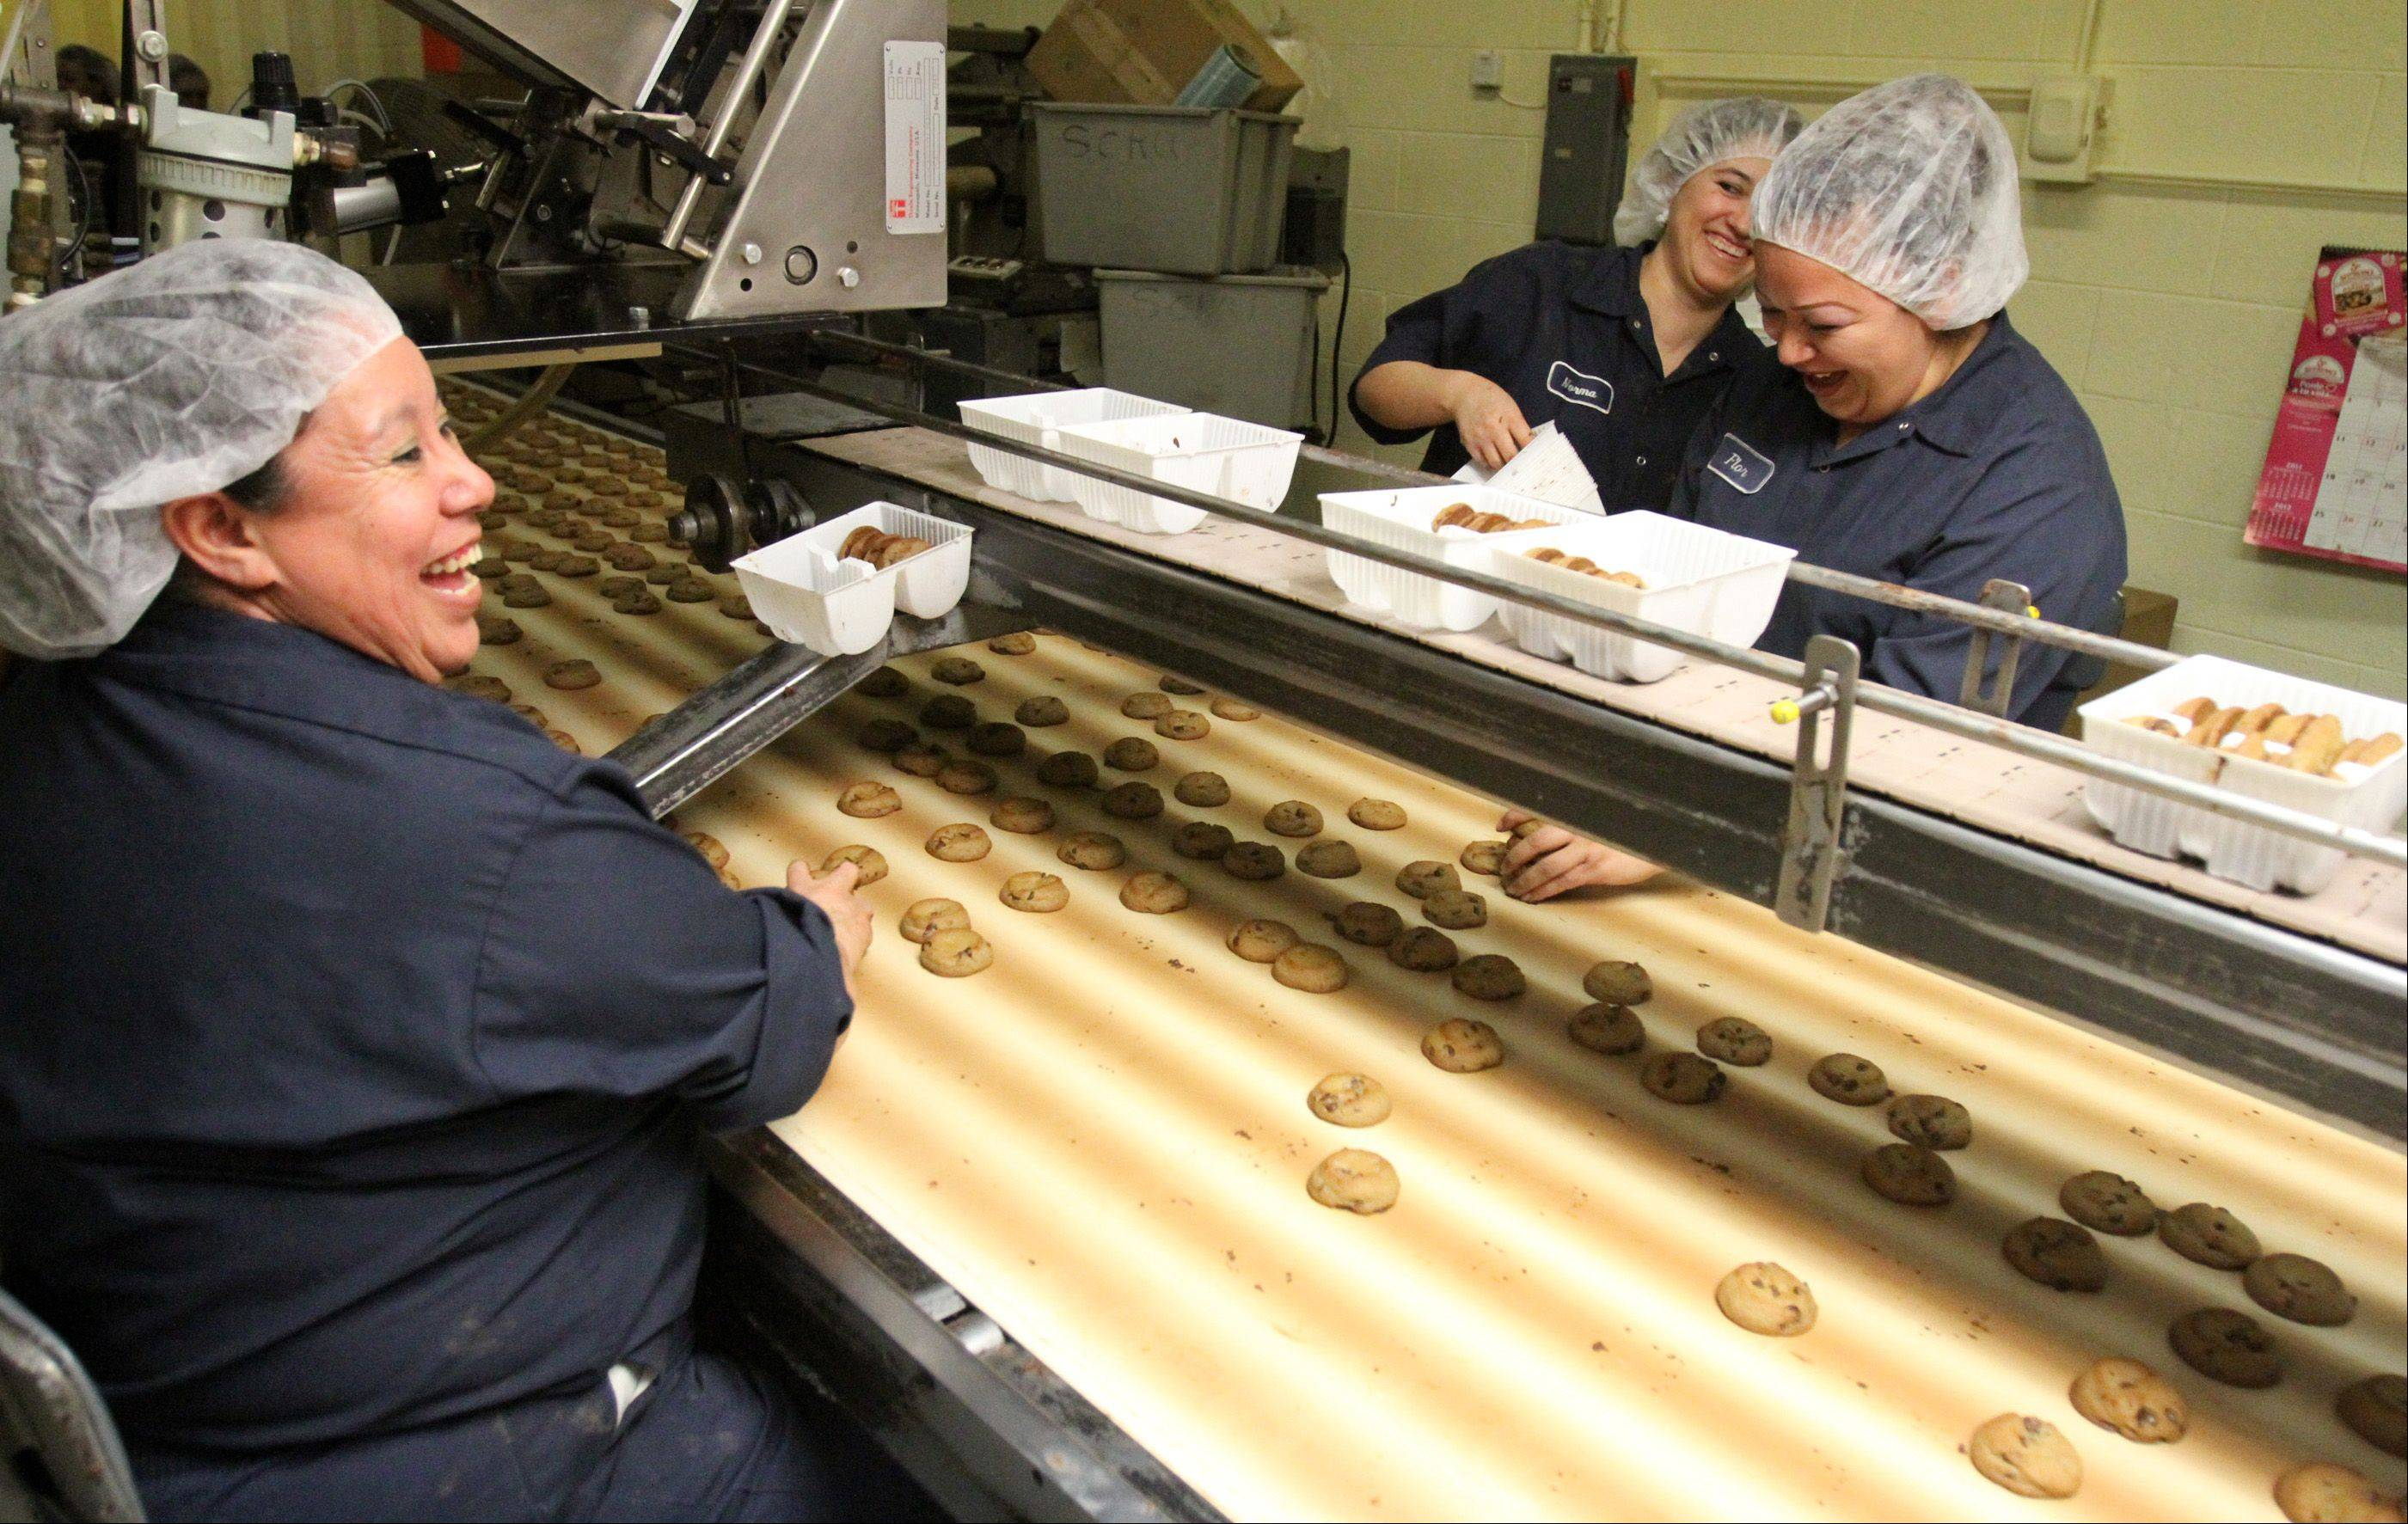 Matt's Cookies in Wheeling has 22 employees to make their cookies and 25 to distribute them to area stores.